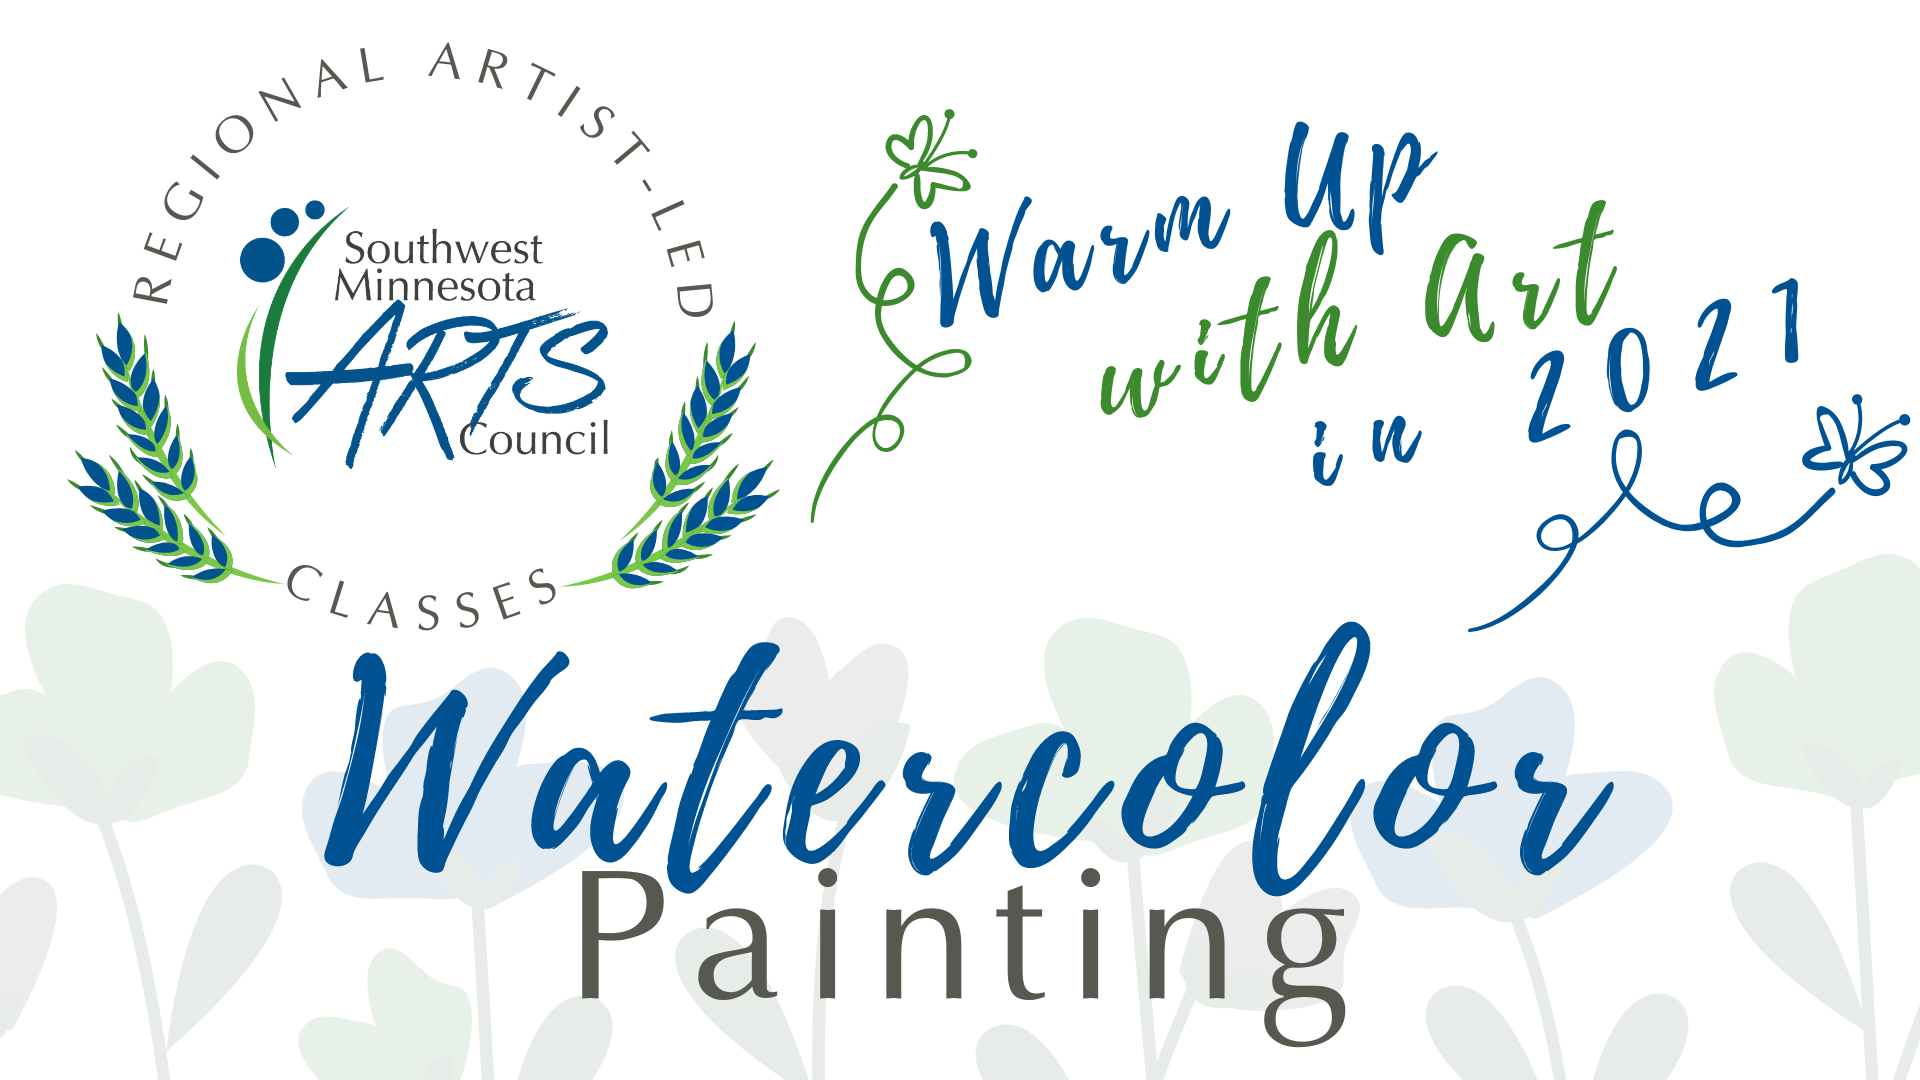 Regional Artist-led Classes, Southwest Minnesota Arts Council. Warm Up with Art in 2021. Watercolor painting.